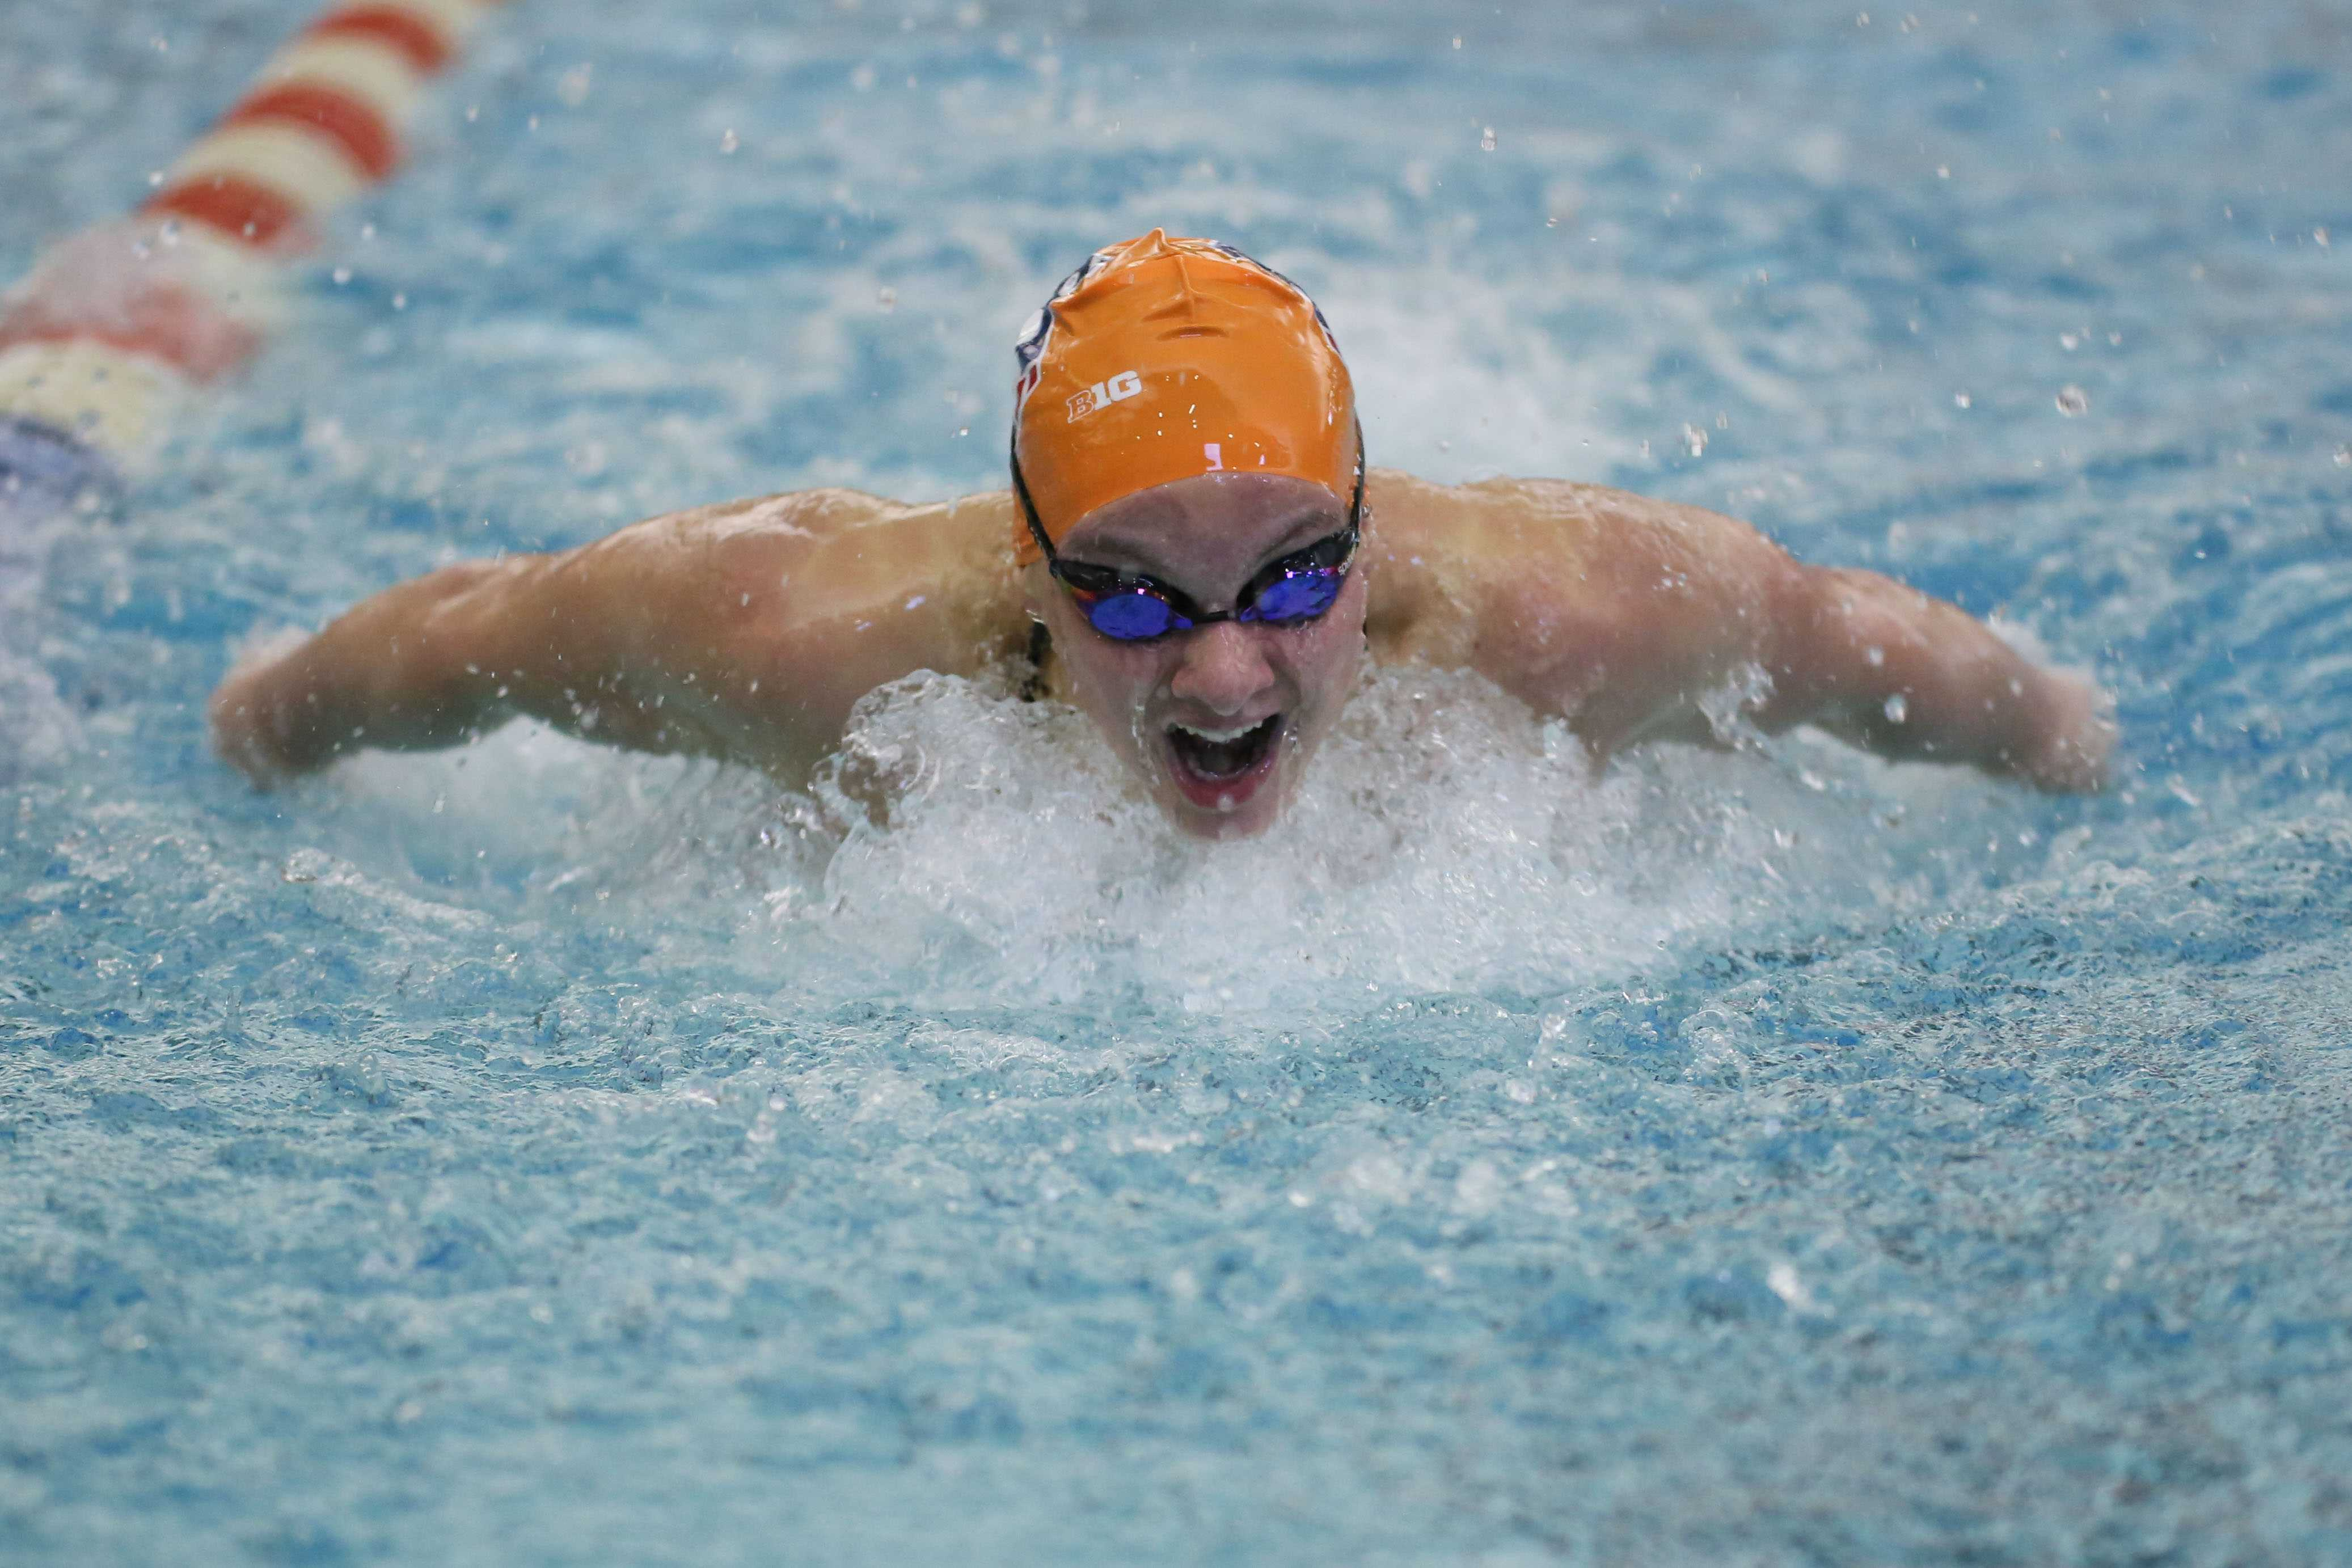 llinois' Gabbie Stecker swims the 100 yard butterfly event during the meet against Nebraska at the ARC on Jan. 24, 2015. Stecker competed in her last home meet as an Illini this weekend.